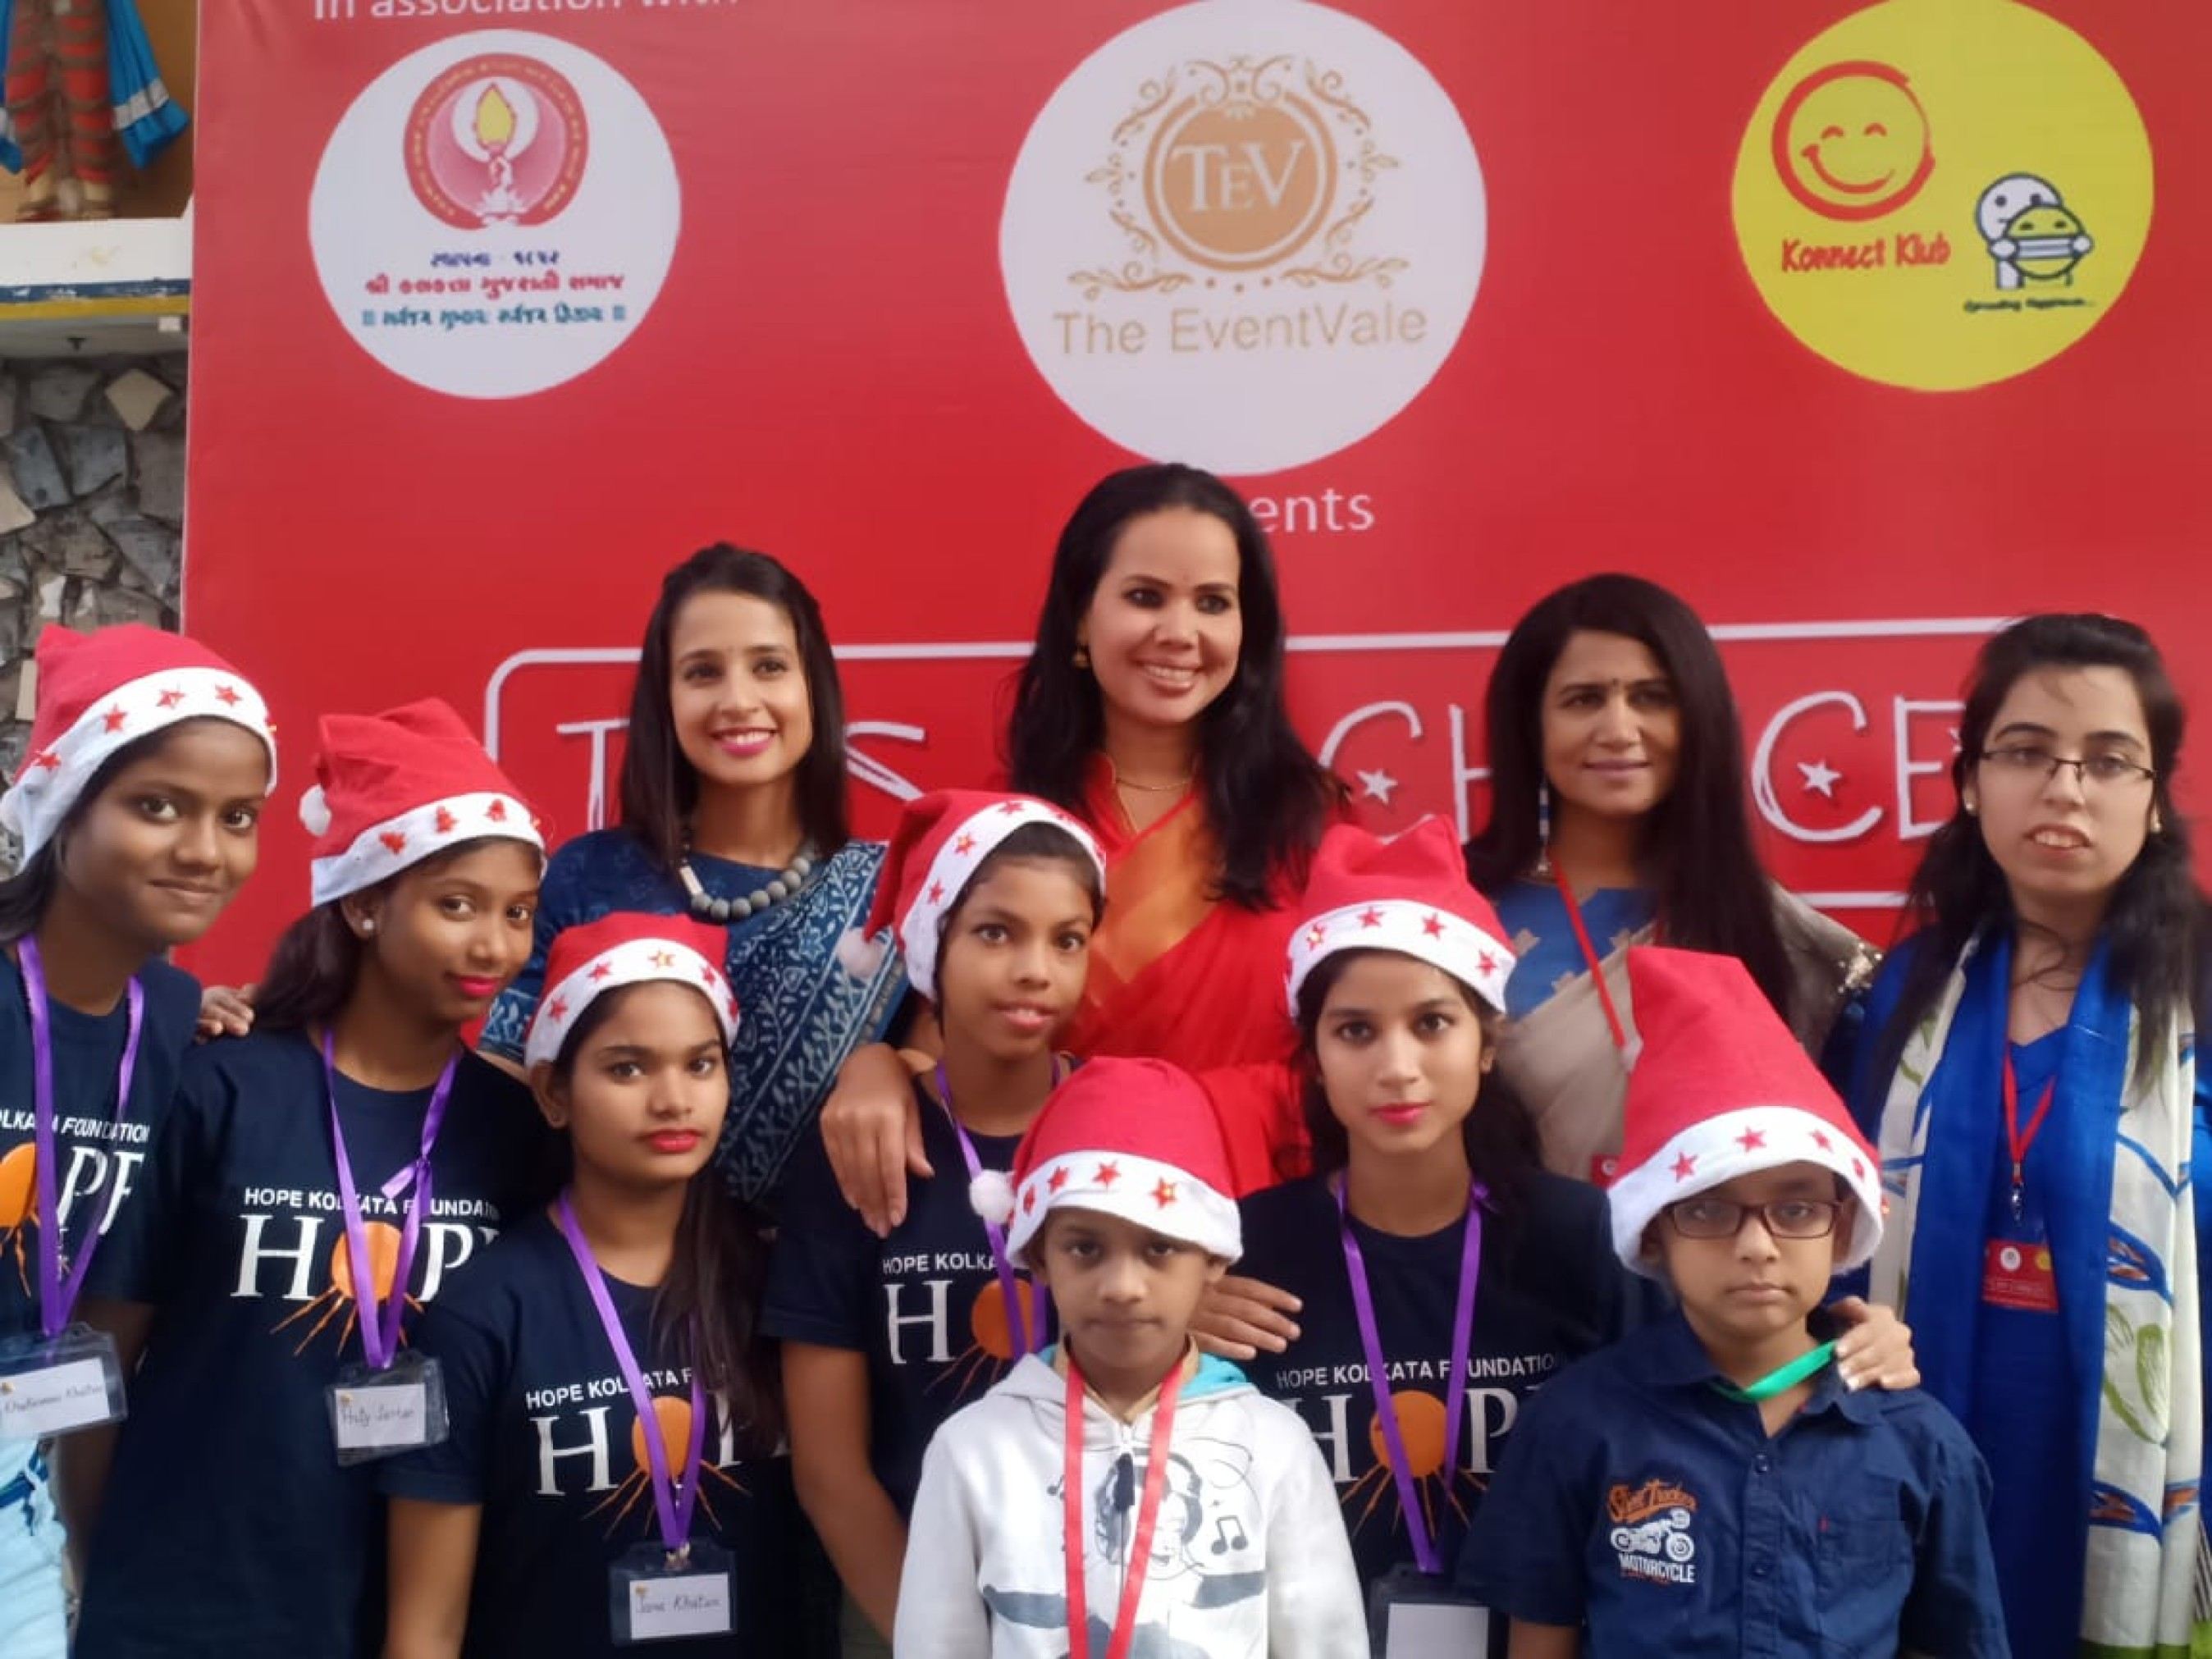 Anneysha Thakker organizes a Winter Workshop and celebrates Christmas with the underprivileged children